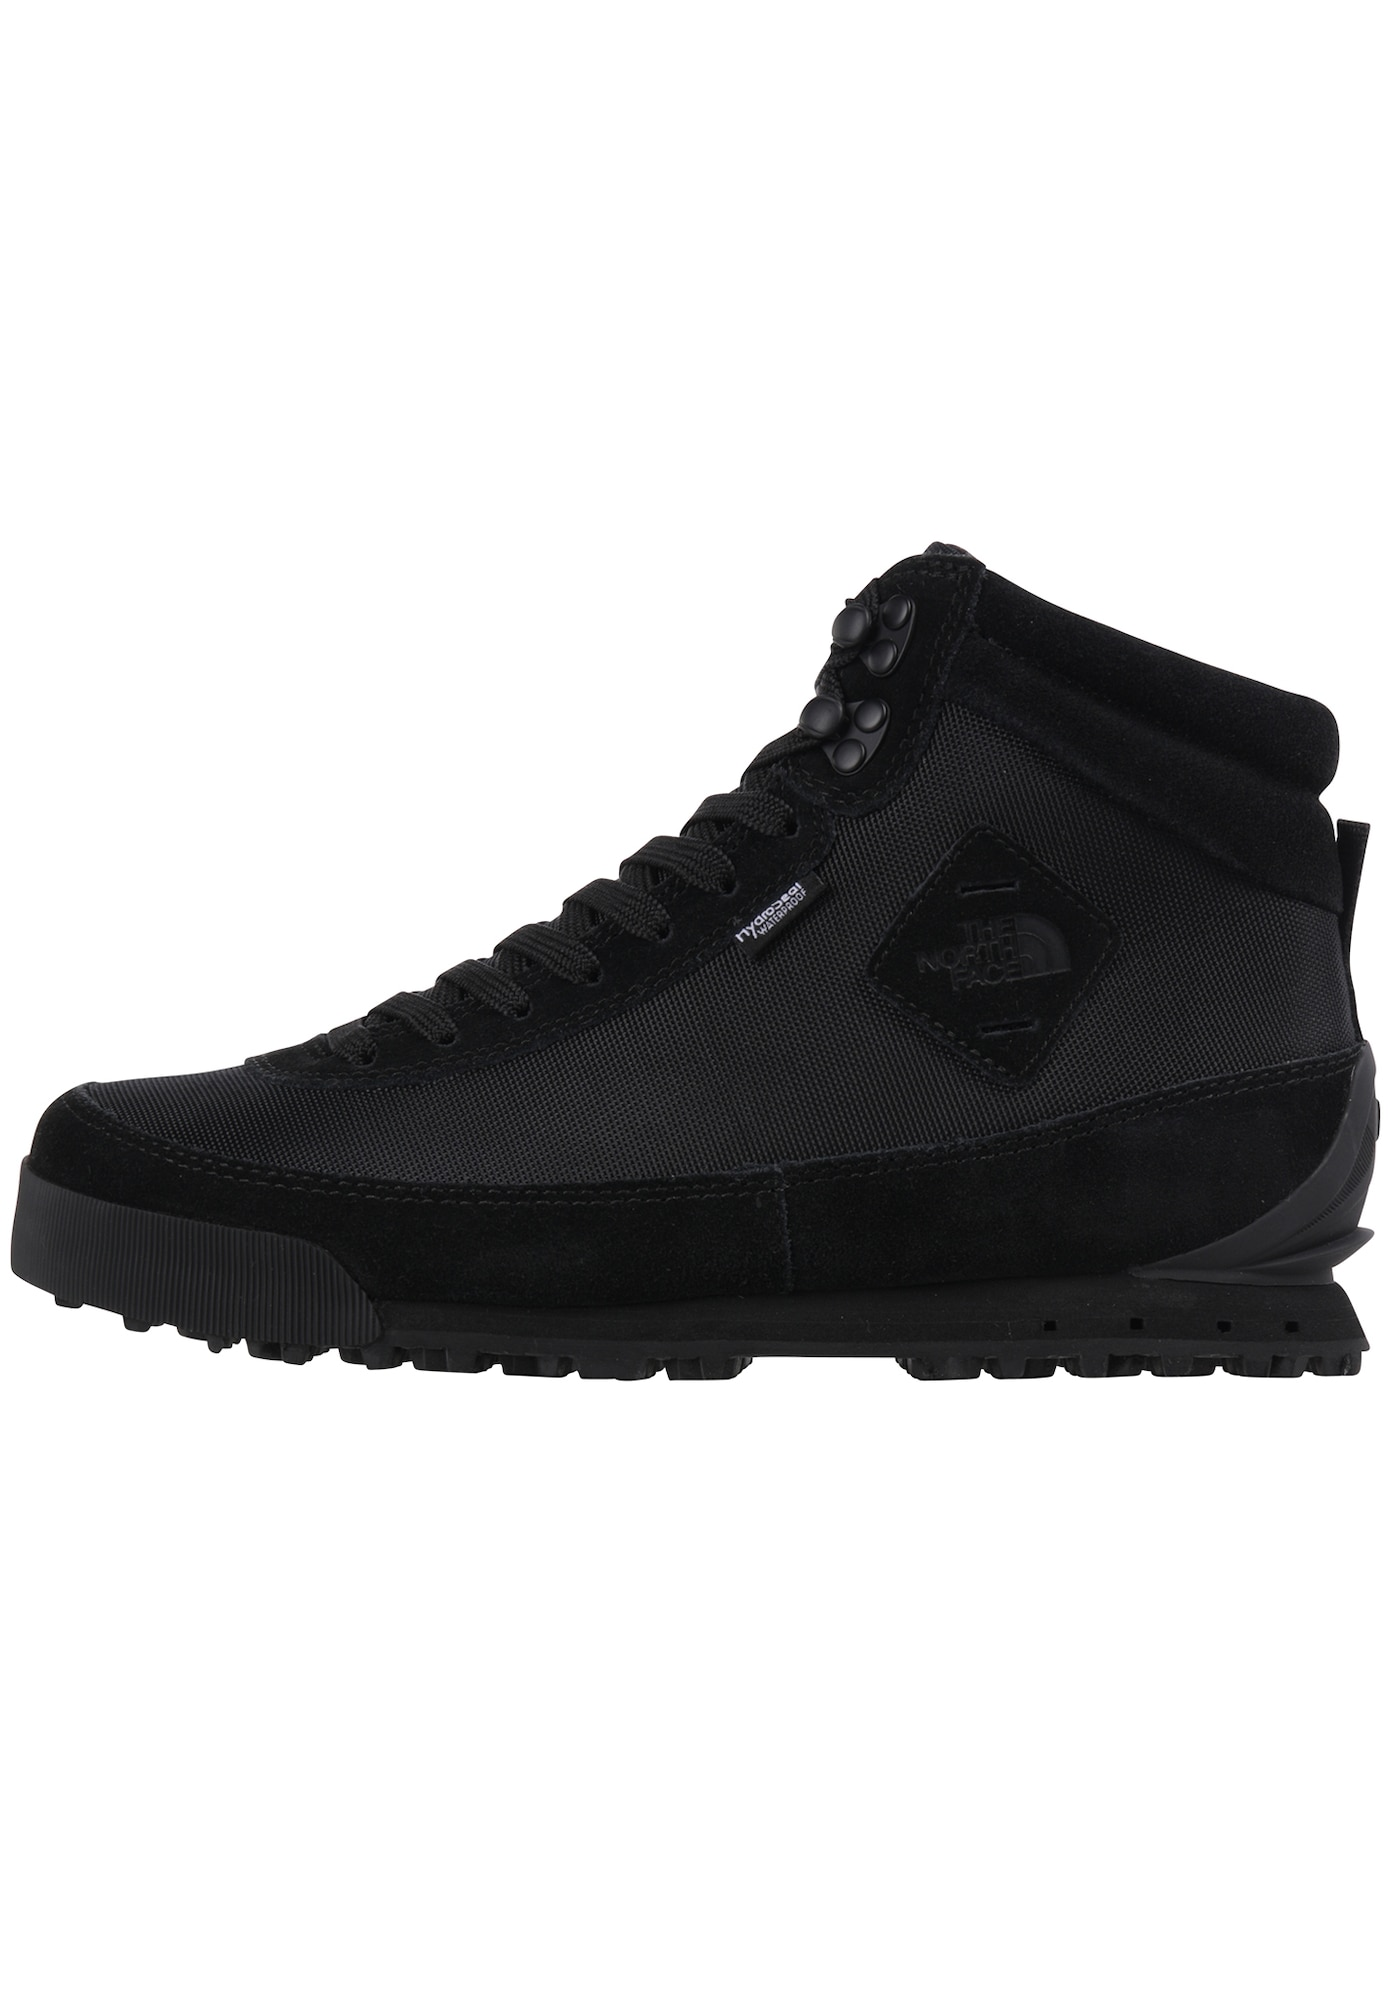 the north face - Stiefel ´Back-To-Berkeley II´